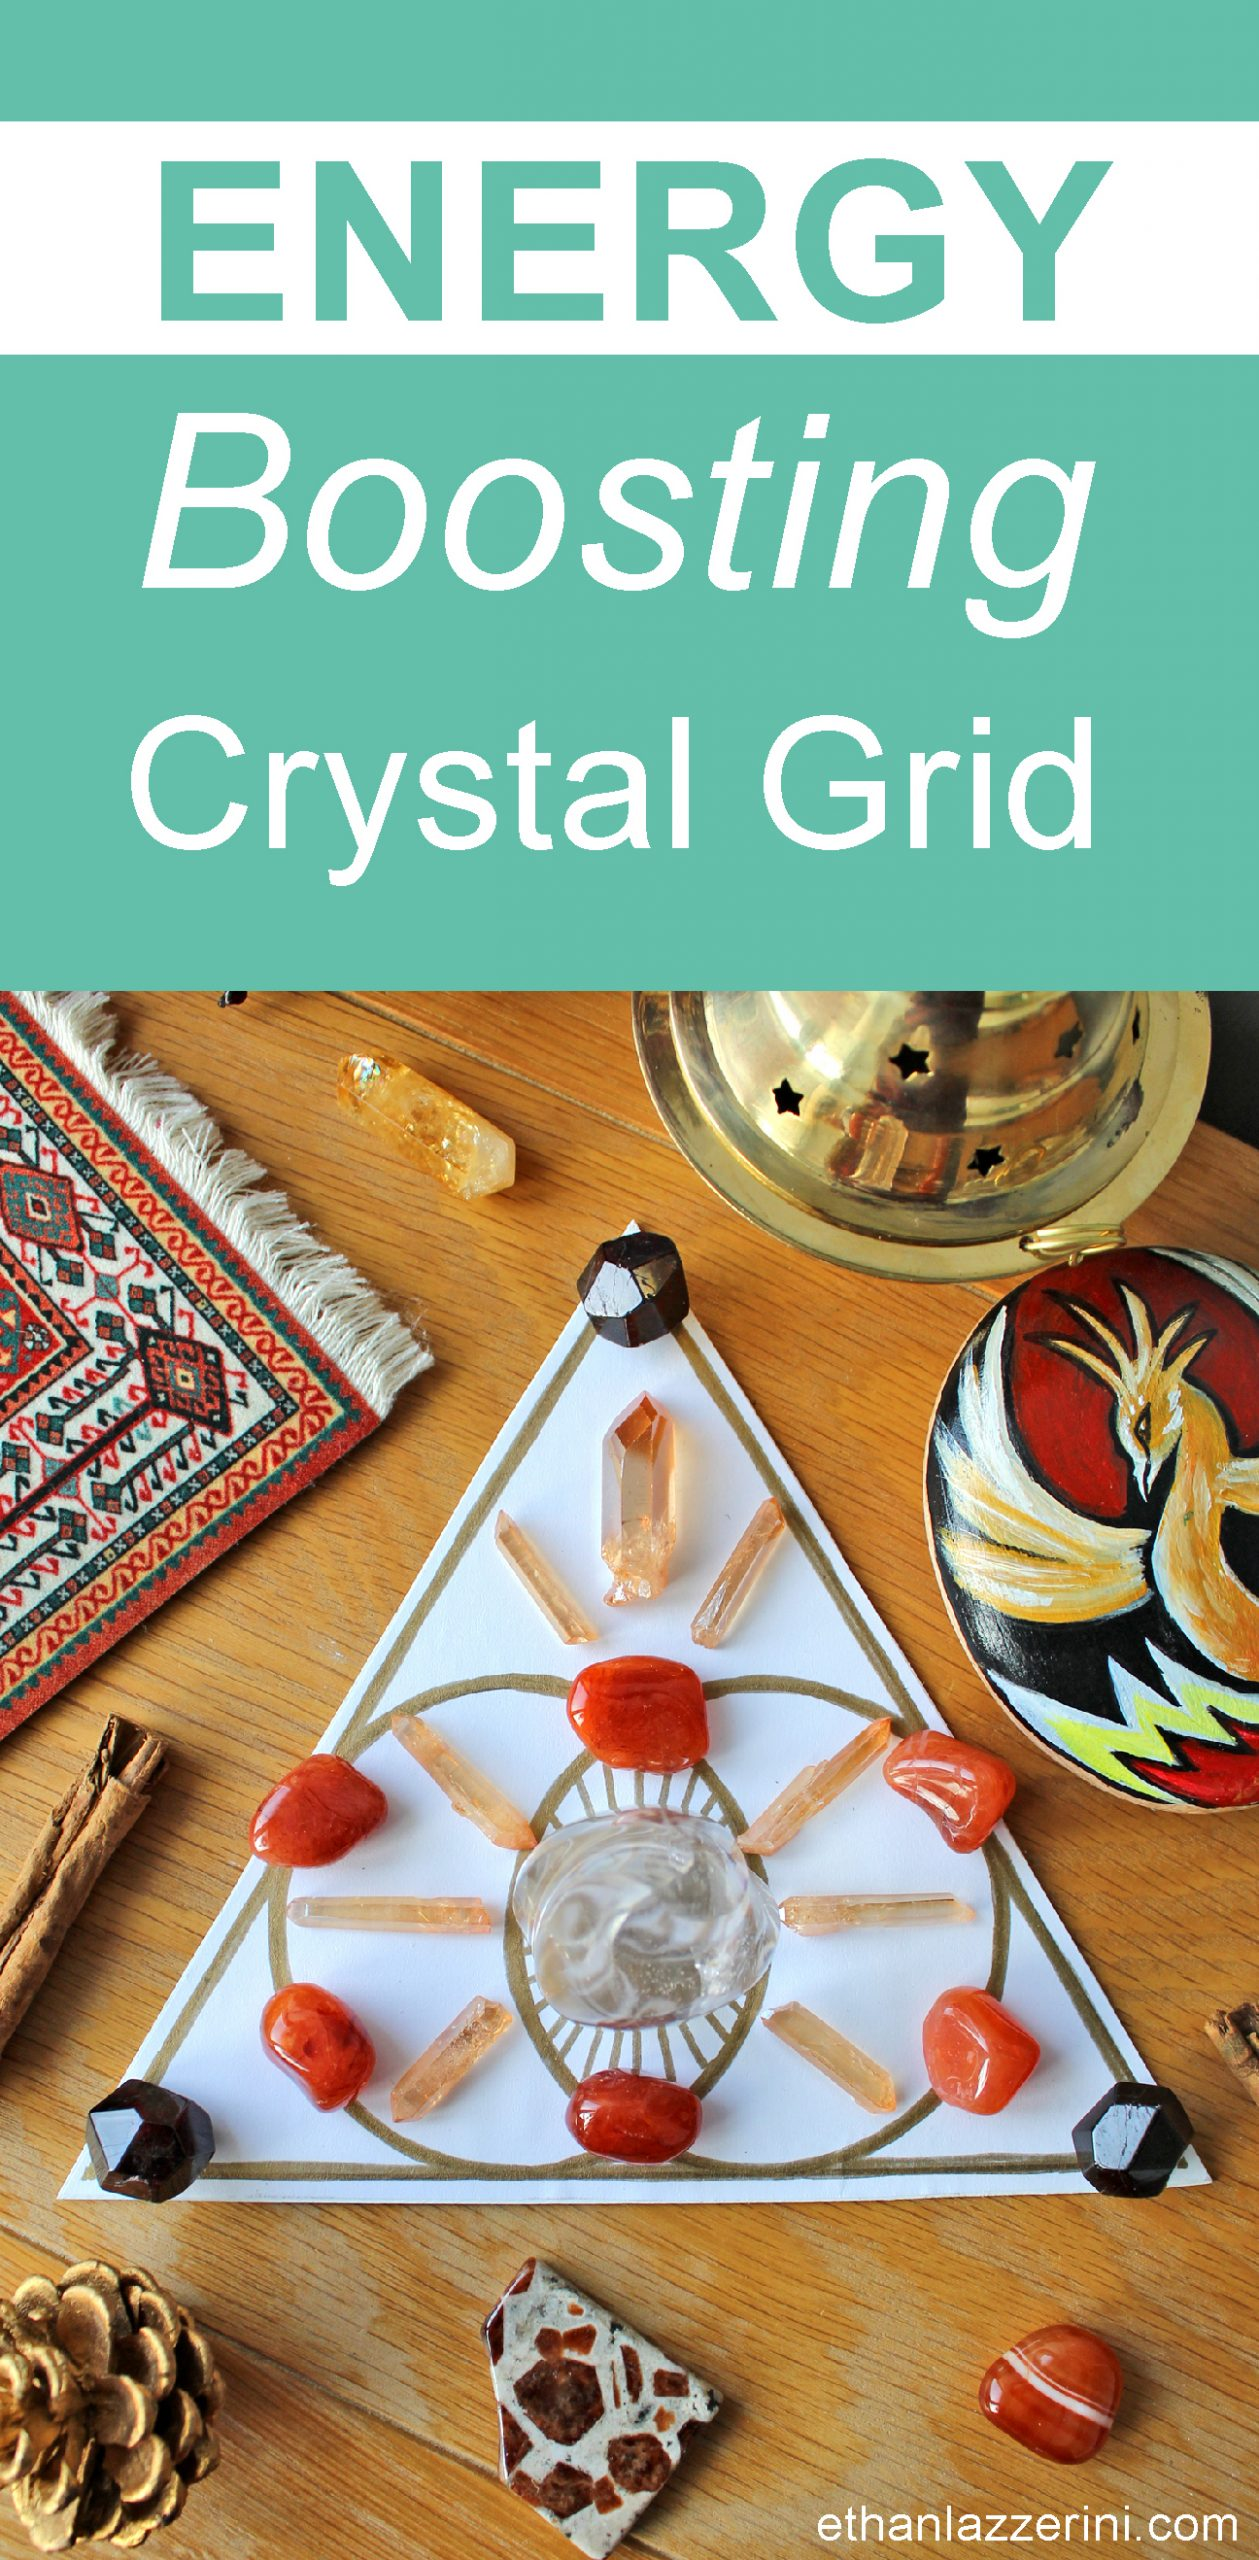 Crystal grid for energy